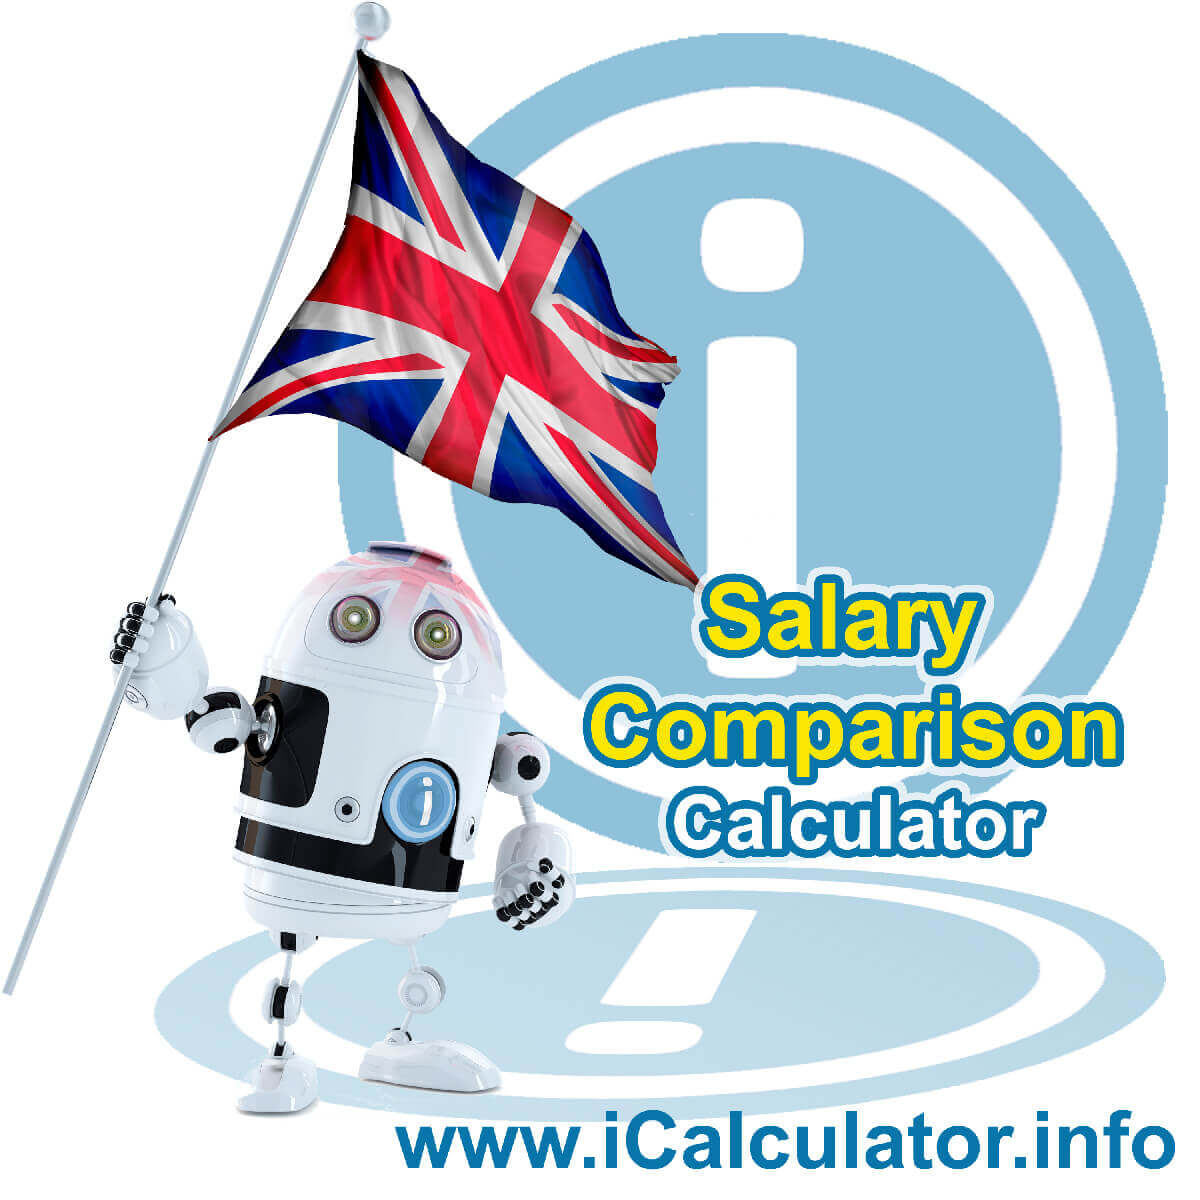 2021 Salary Calculator. This image shows the United Kingdom flag and information relating to the tax formula used in the 2021 Salary Calculator